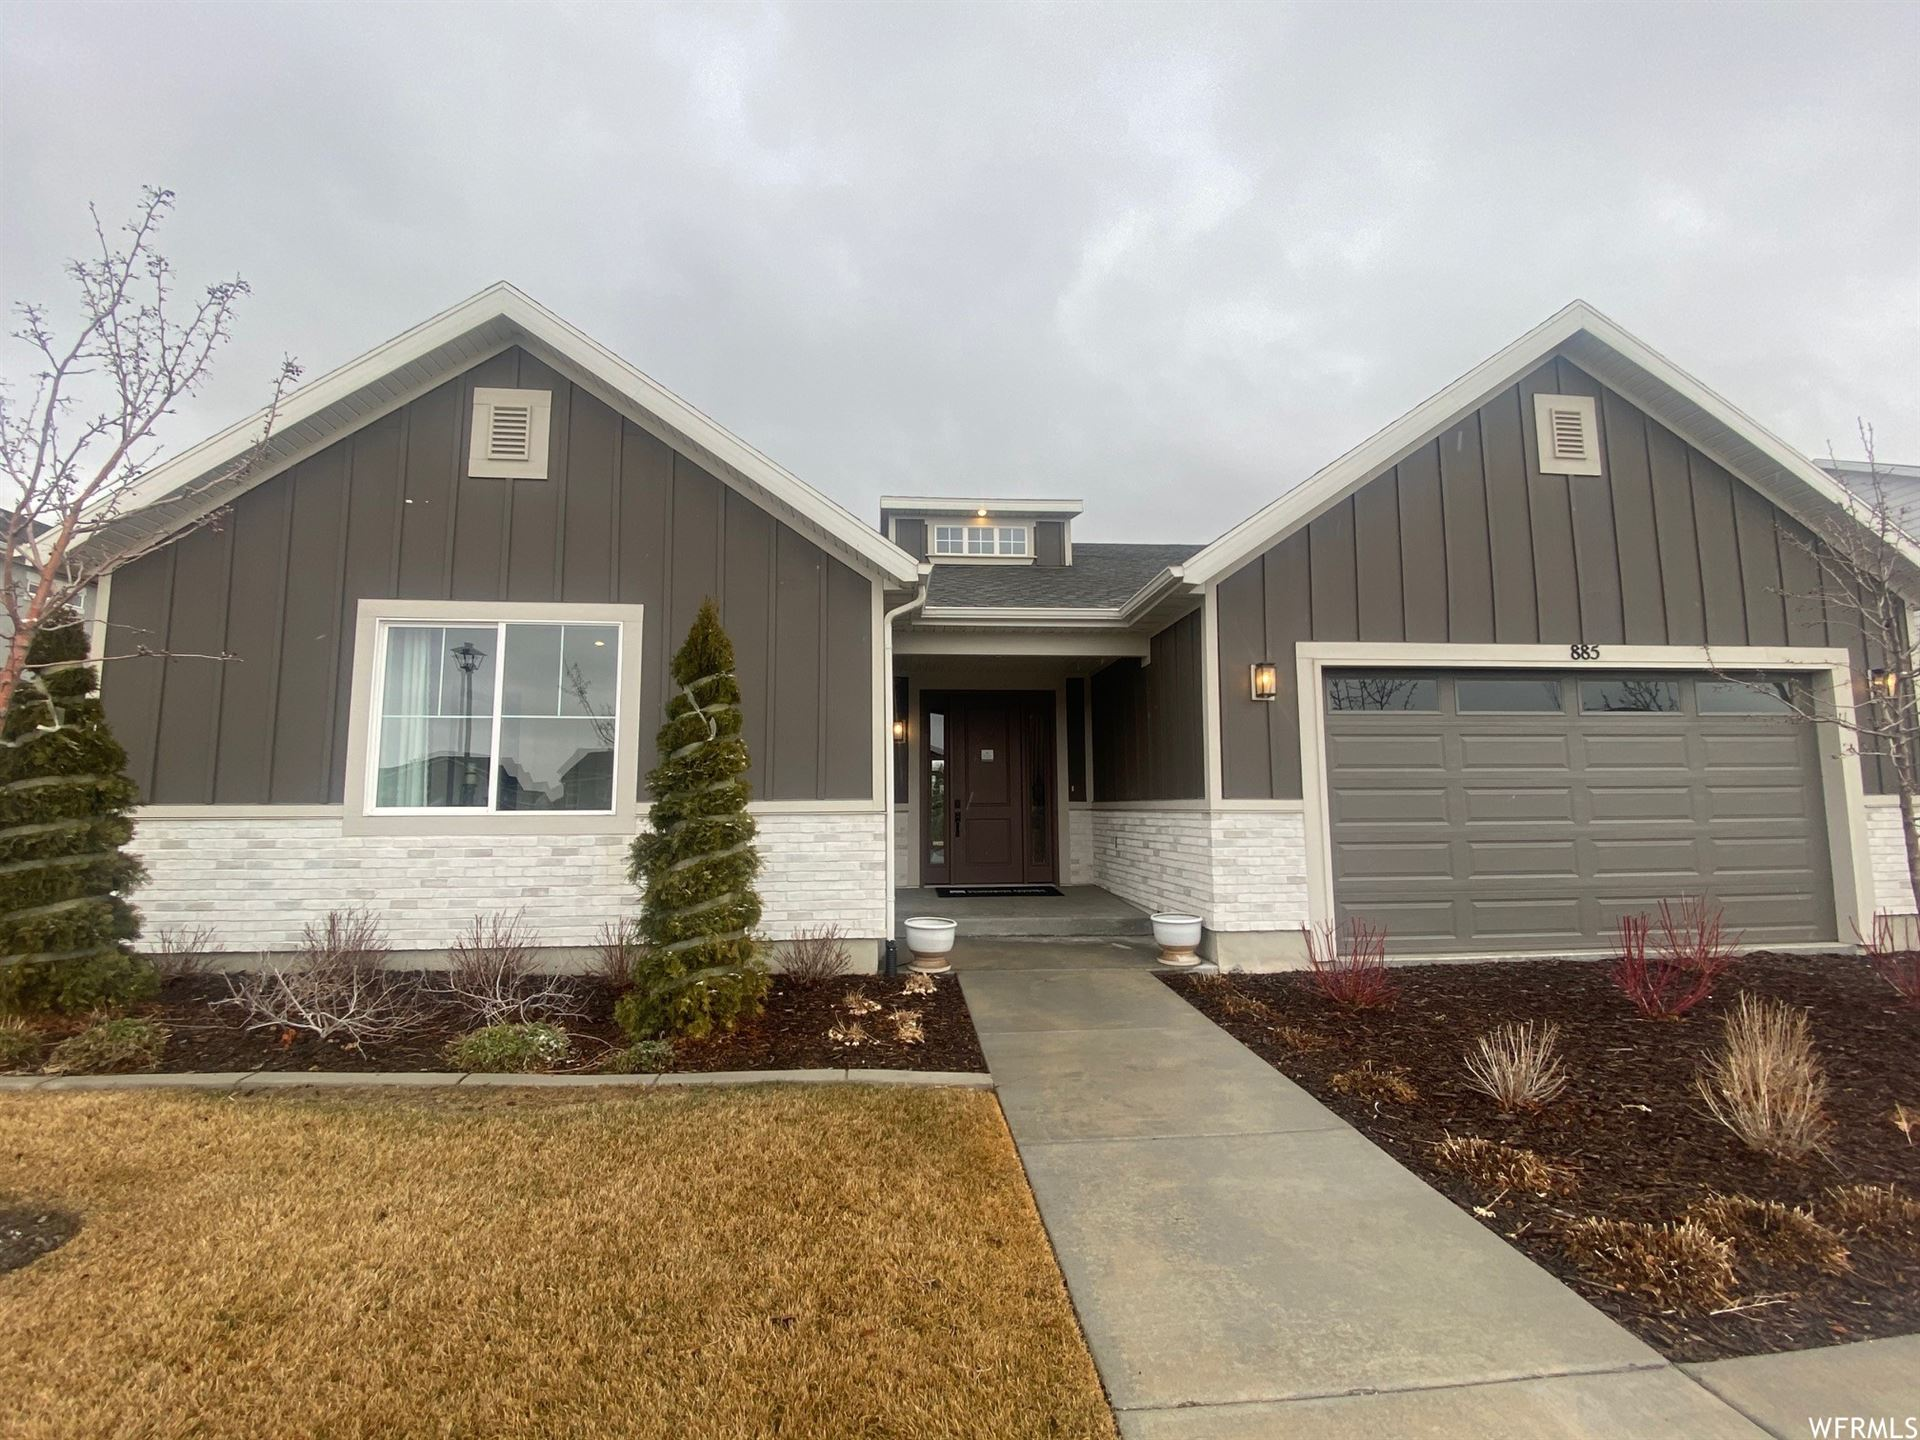 Photo of 682 S 330 W #409, American Fork, UT 84003 (MLS # 1724800)